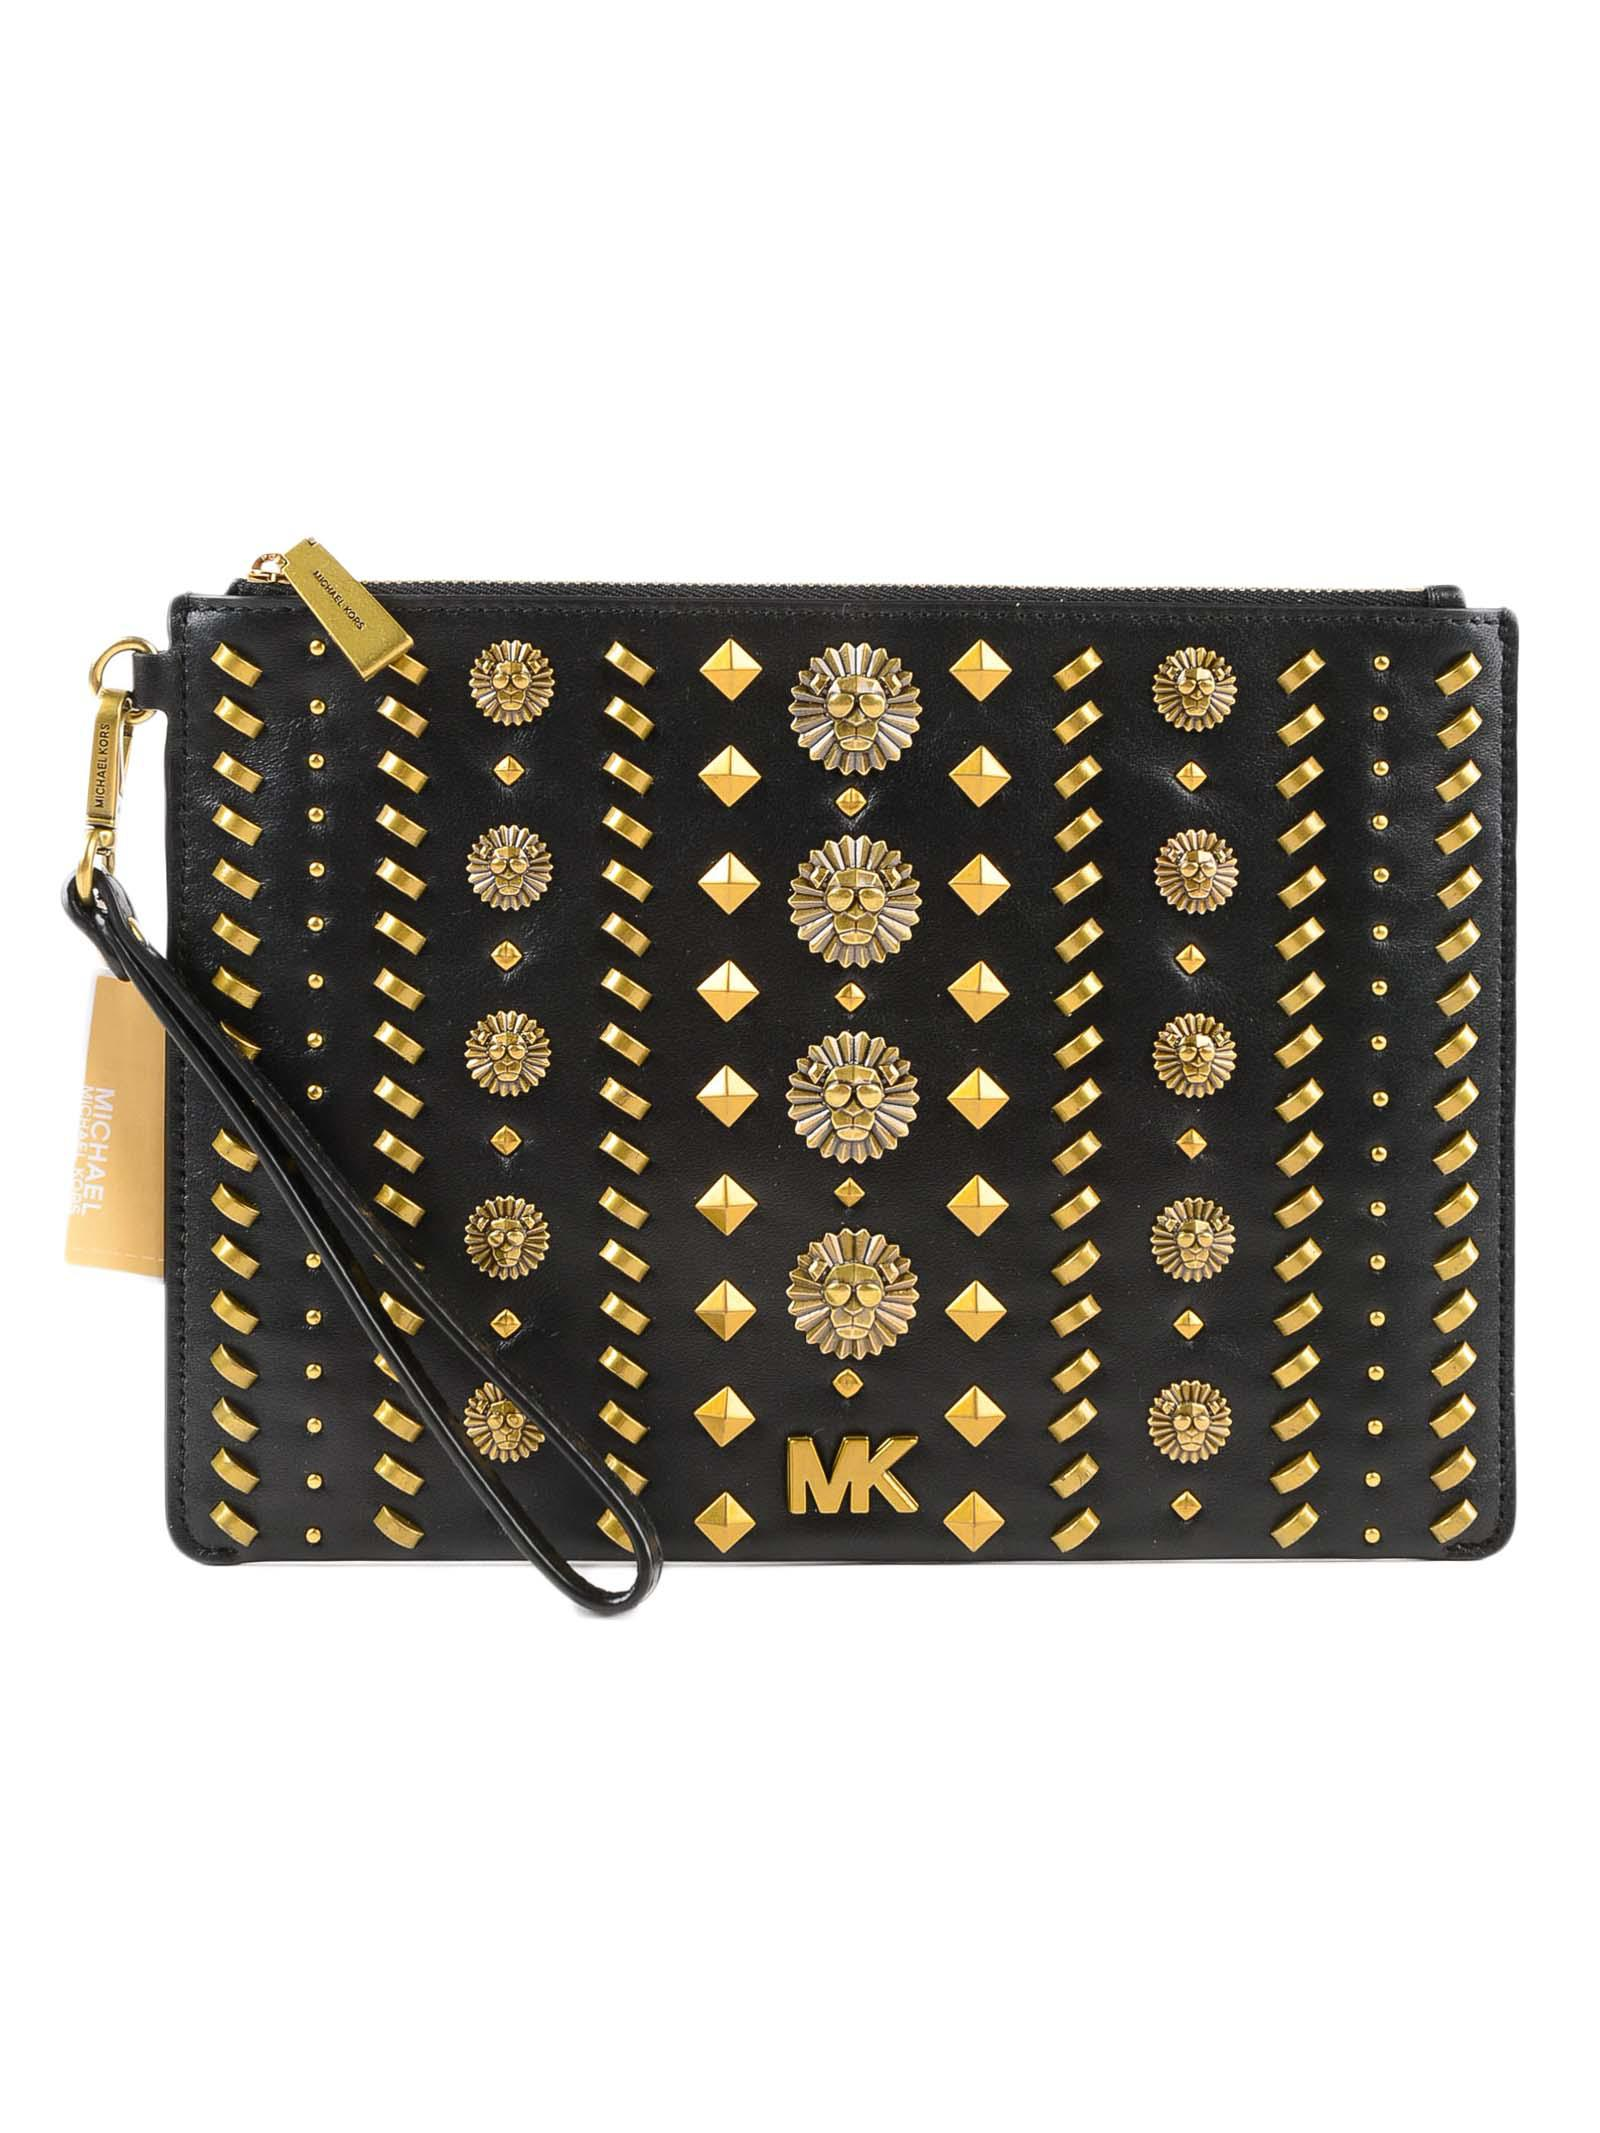 1a7204e78e069 Lyst - Michael Kors Md Zip Pouch Black in Black